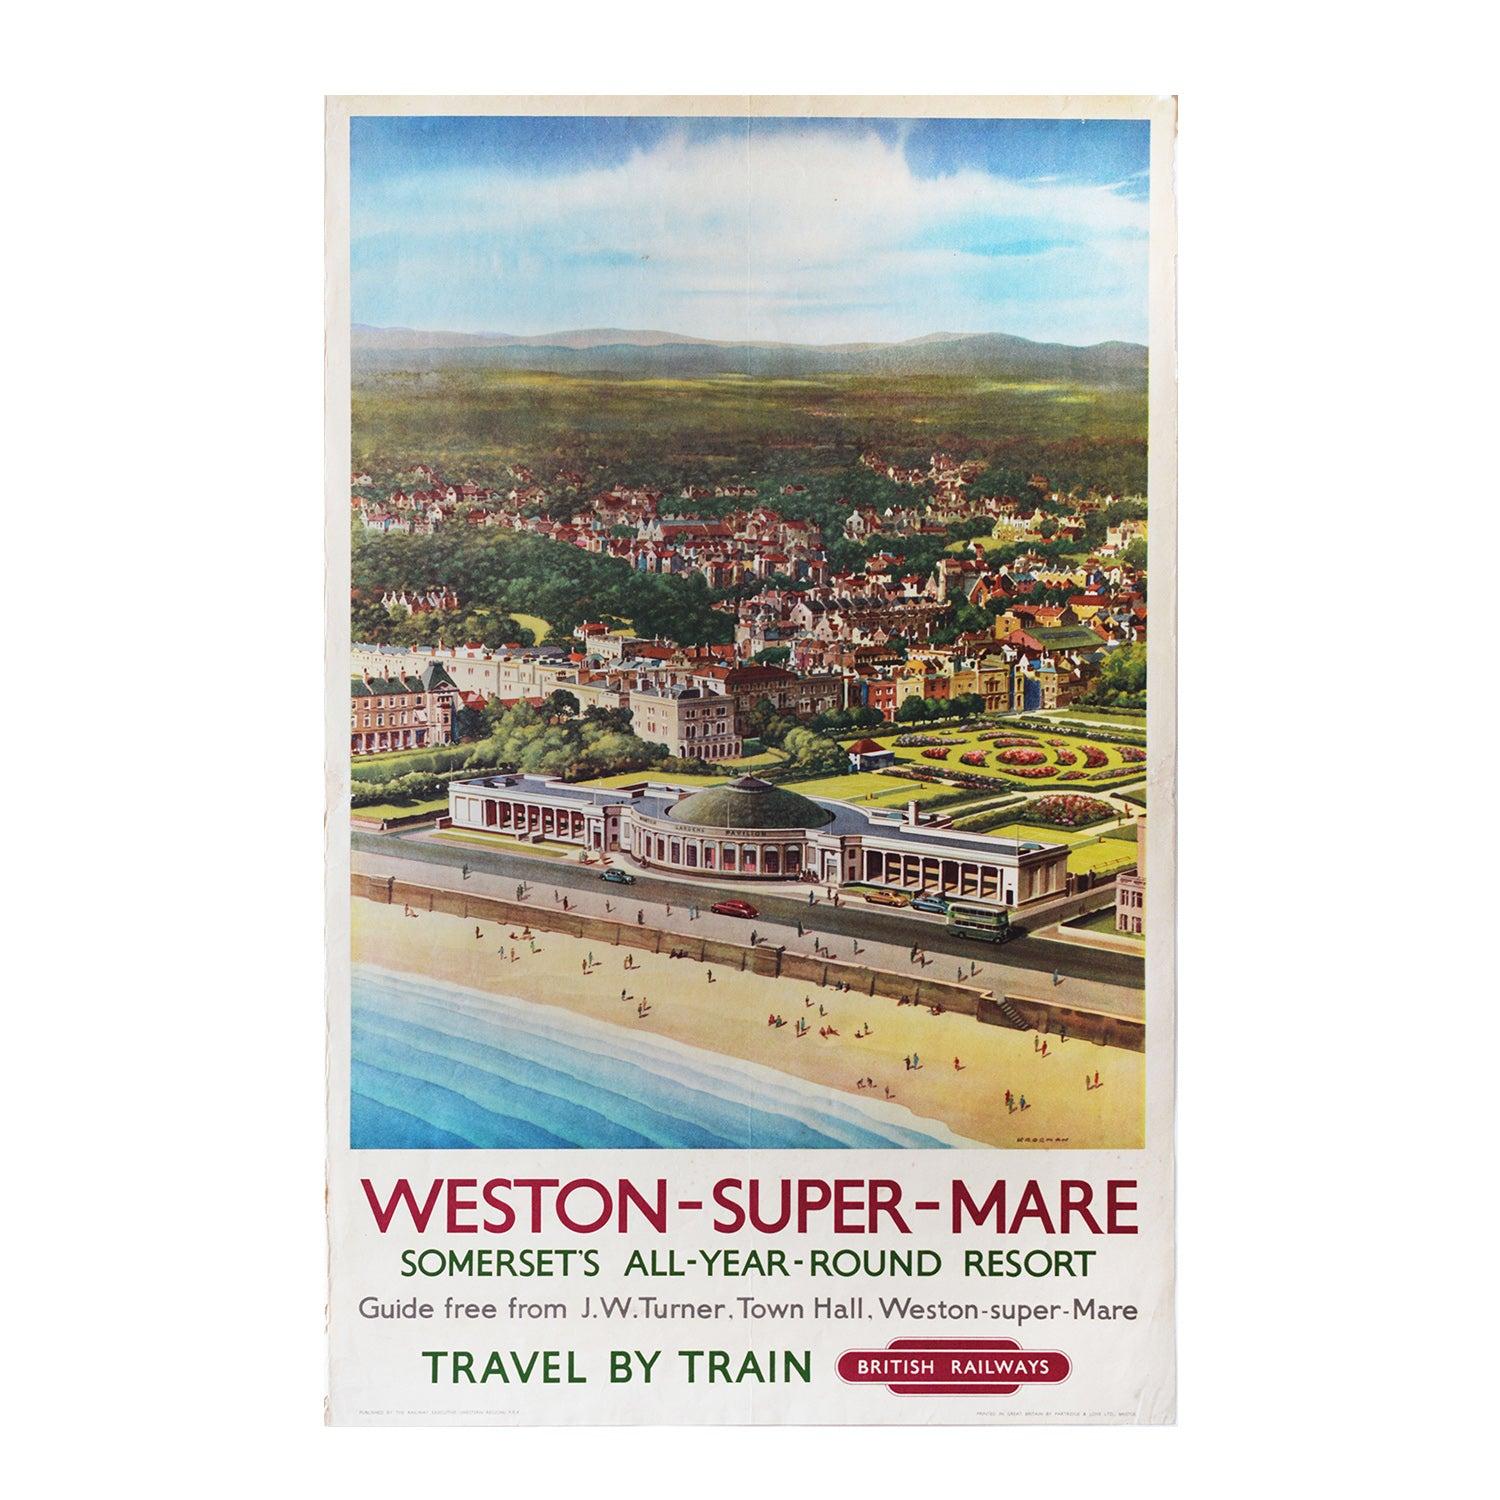 Original BR Weston Super Mare poster